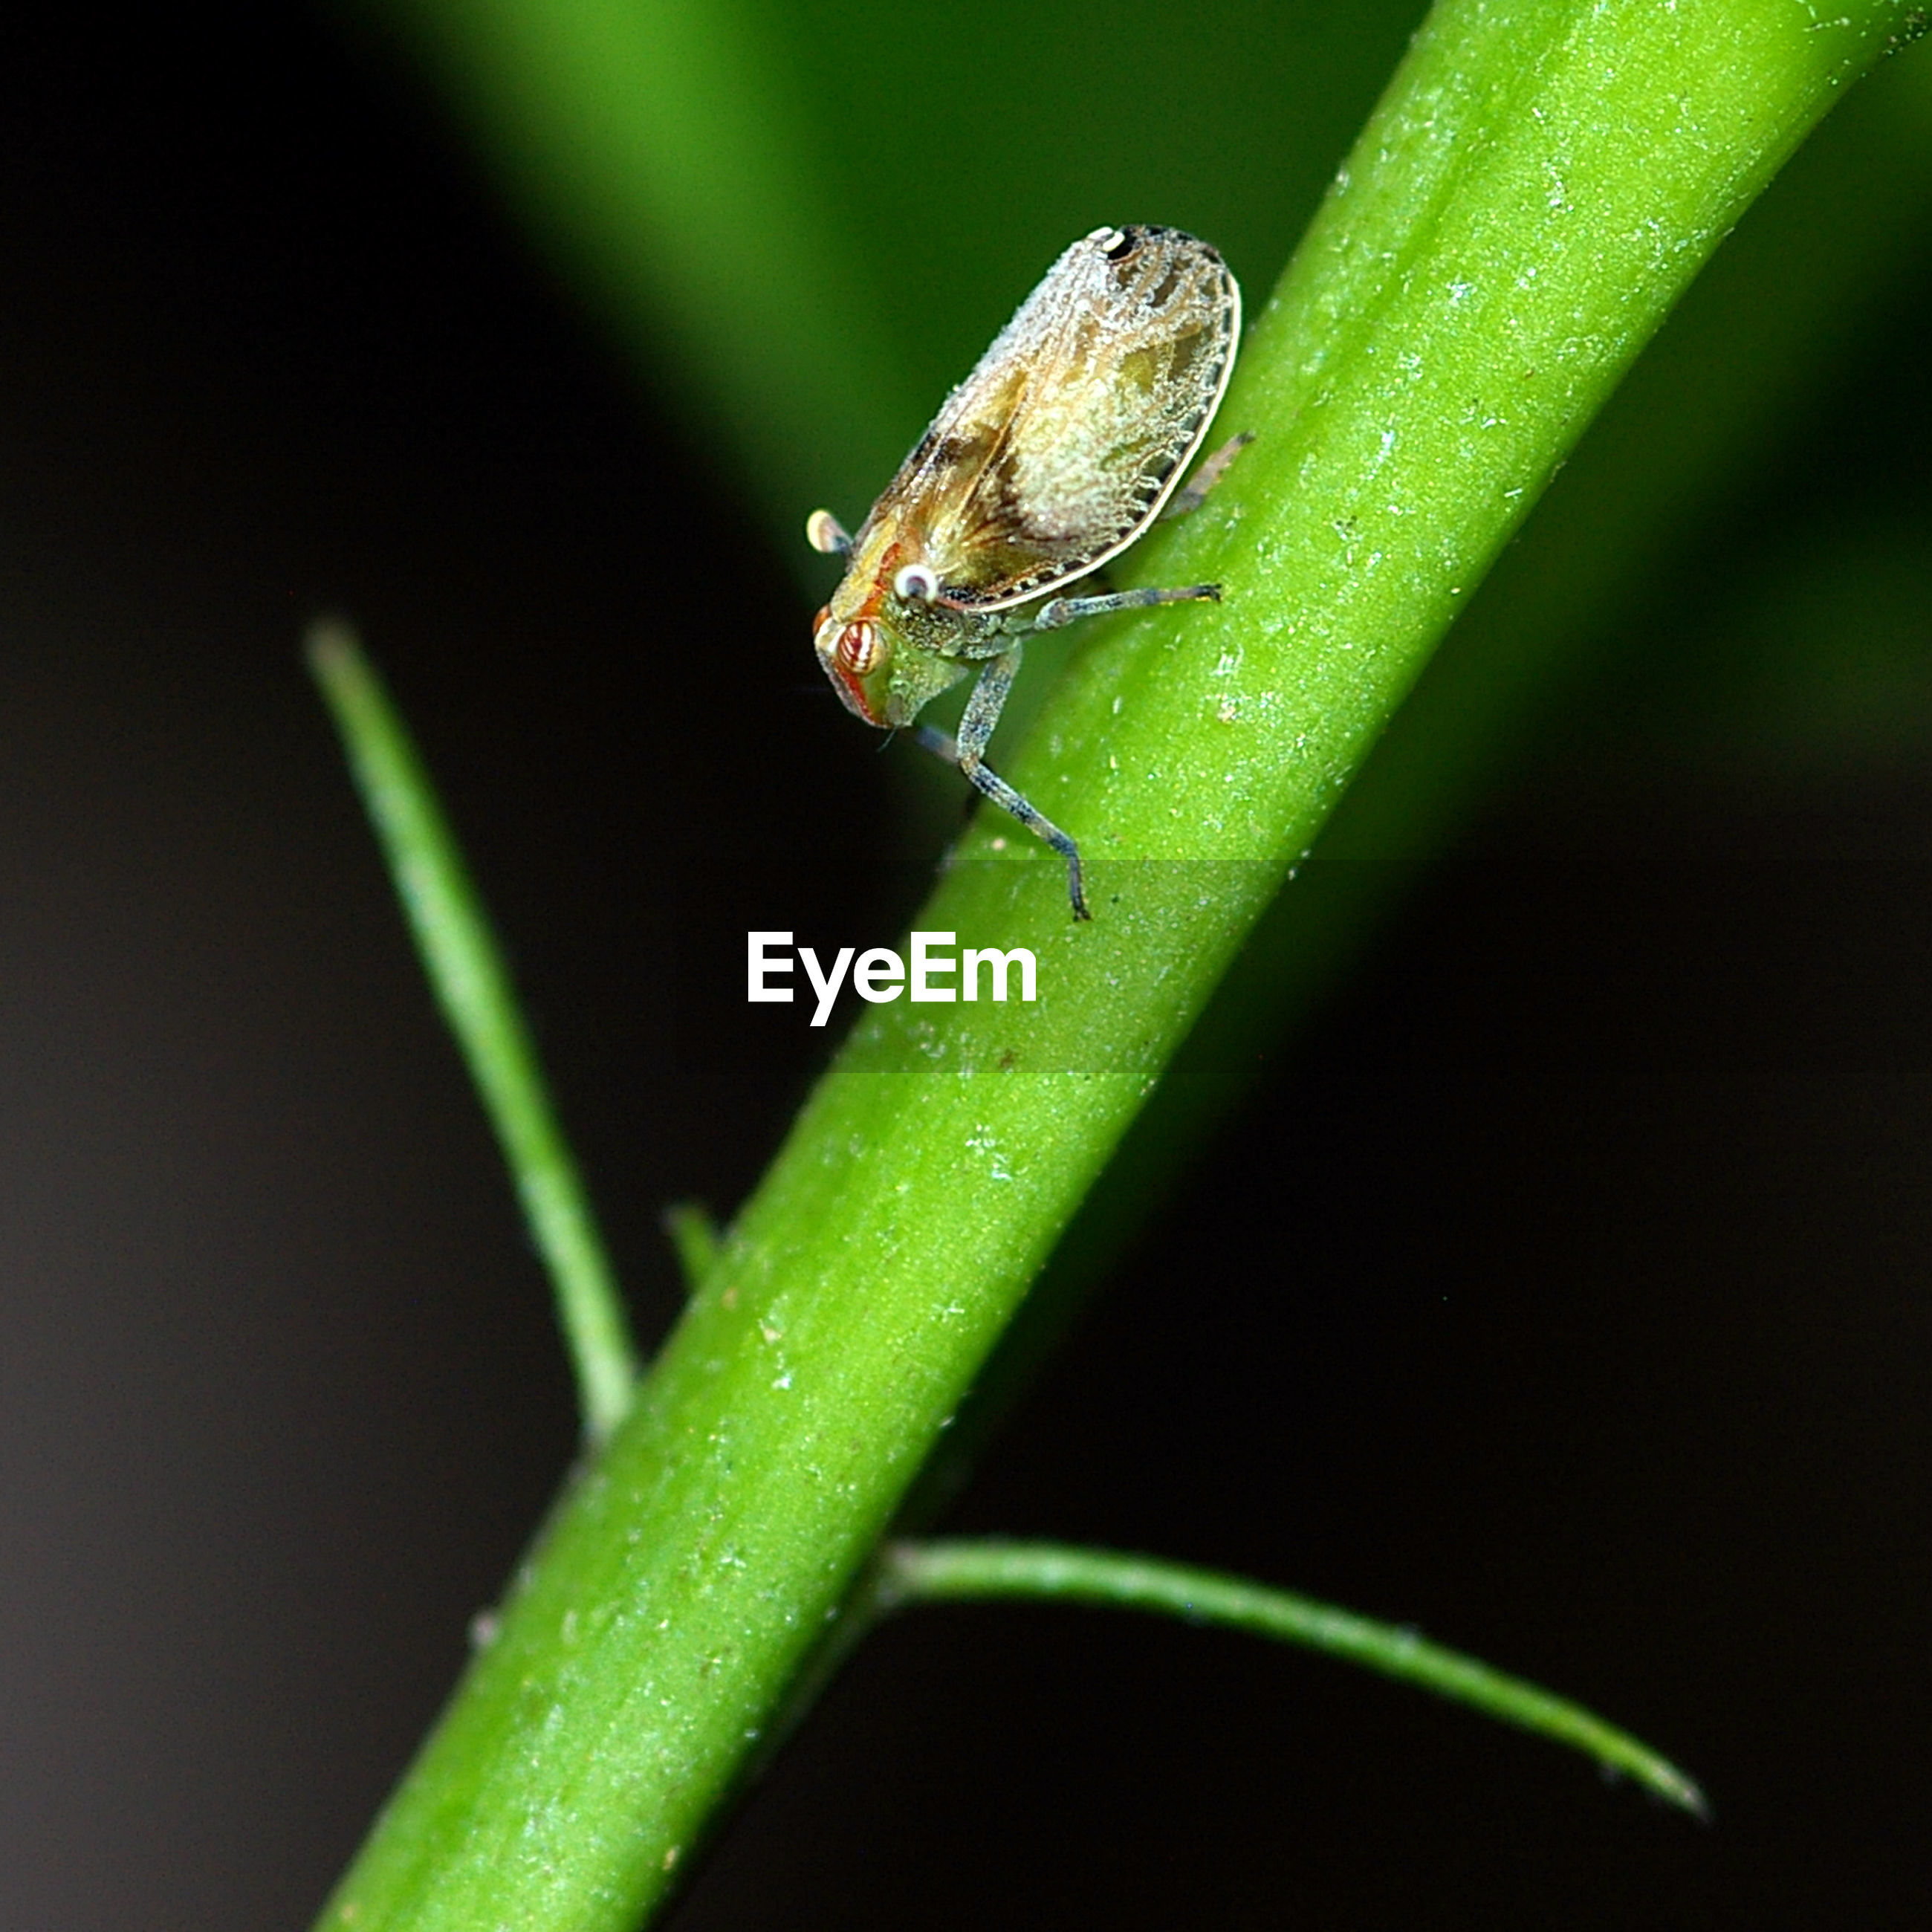 Close-up of insect on stem